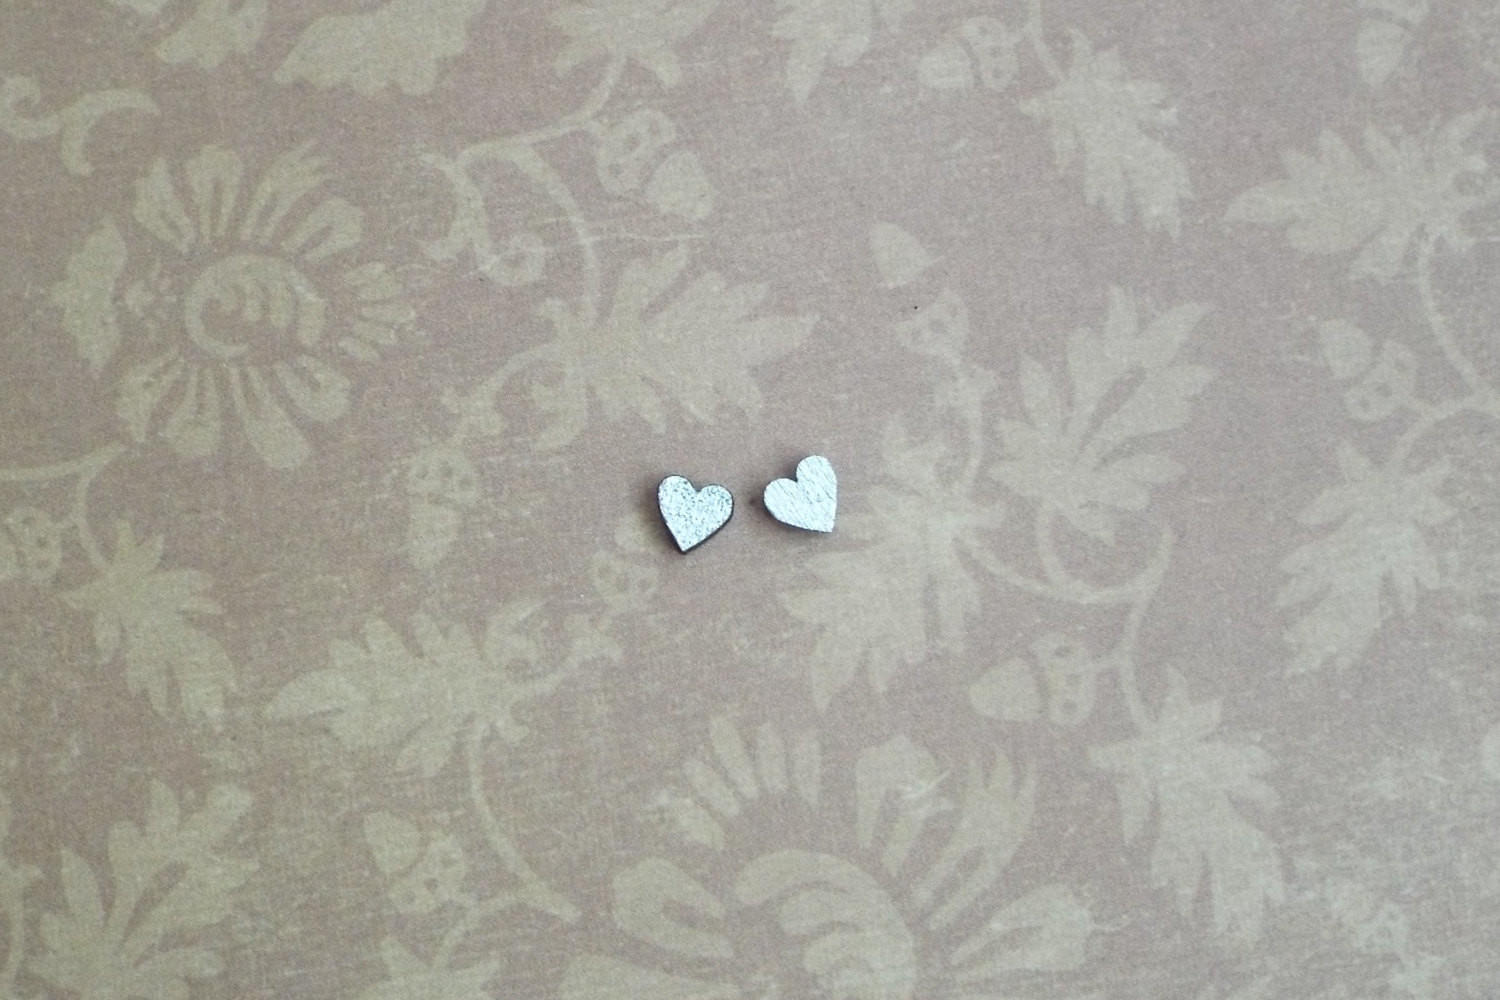 Image of Tiny Silver Wood Heart Stud Earrings Post Wooden Studs